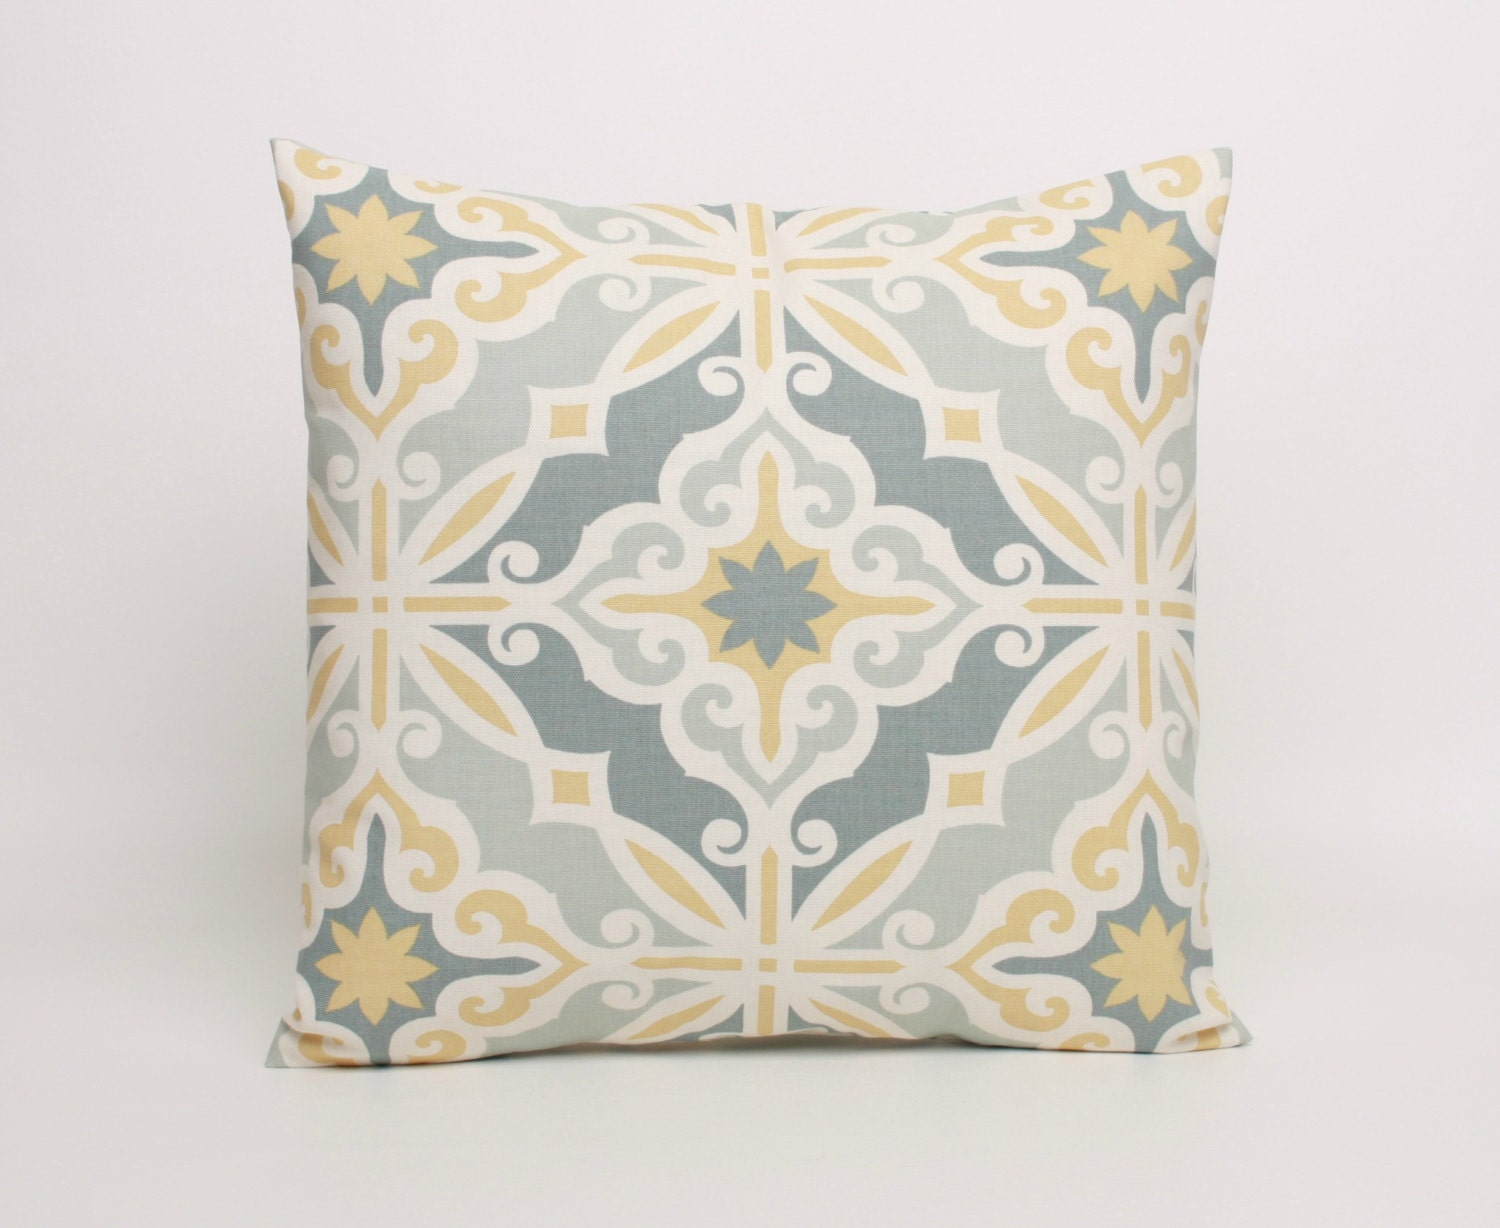 Throw Pillows Groupon : Yellow and Gray Throw Pillow Cover 22x22 by DimensionsHomeDecor